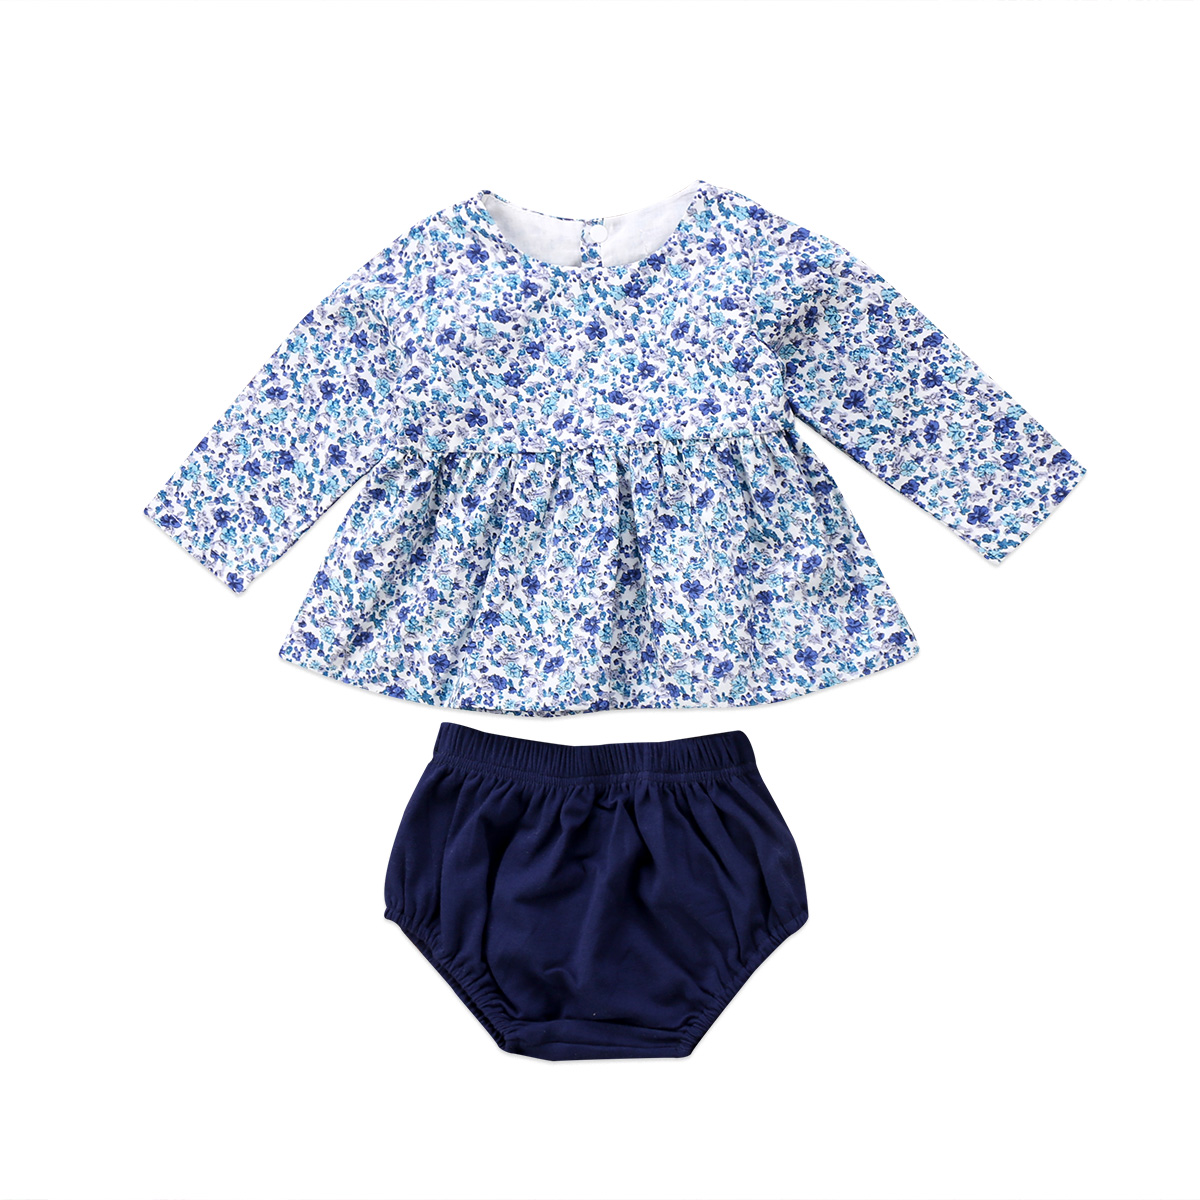 Newborn Kid Baby Girls Clothes Sets Floral Dress Tops Long Sleeve Shorts 2pcs Briefs Clothing Set Baby Girl Outfits 0 24m floral baby girl clothes set 2017 summer sleeveless ruffles crop tops baby bloomers shorts 2pcs outfits children sunsuit